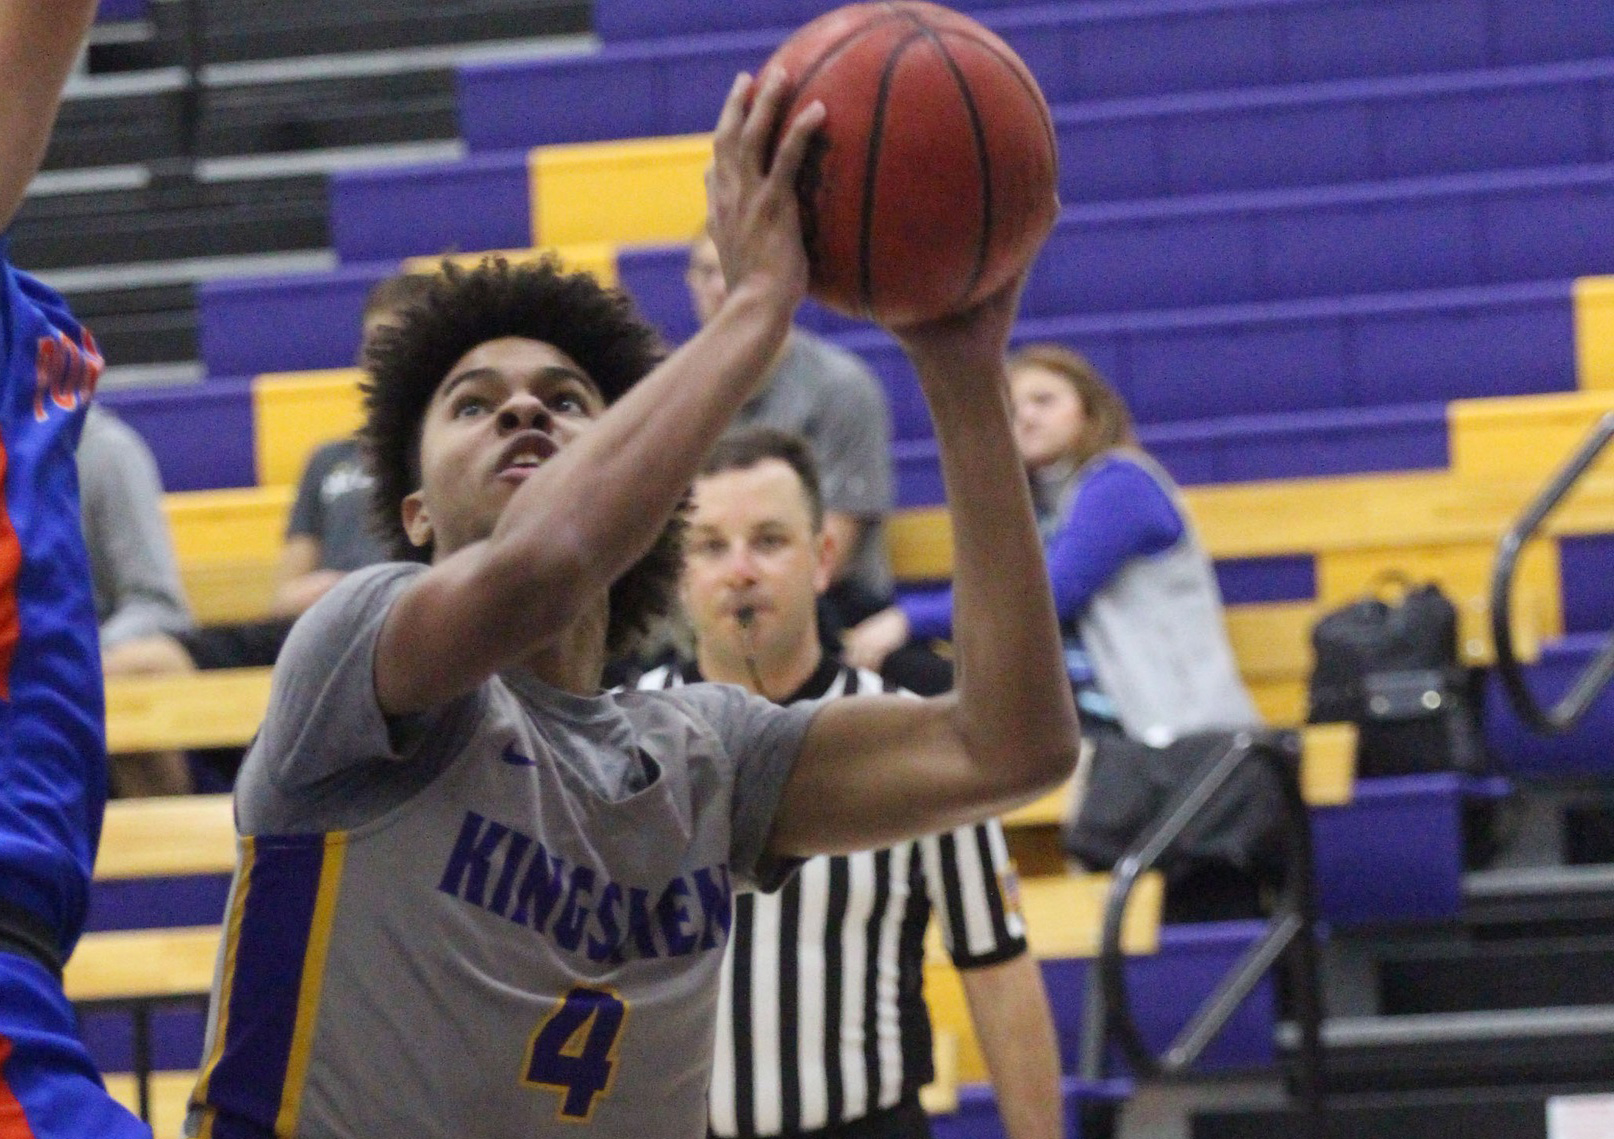 Thomas Notches Double-Digit Points for Sixth Straight Game; Kingsmen Fall to Falcons